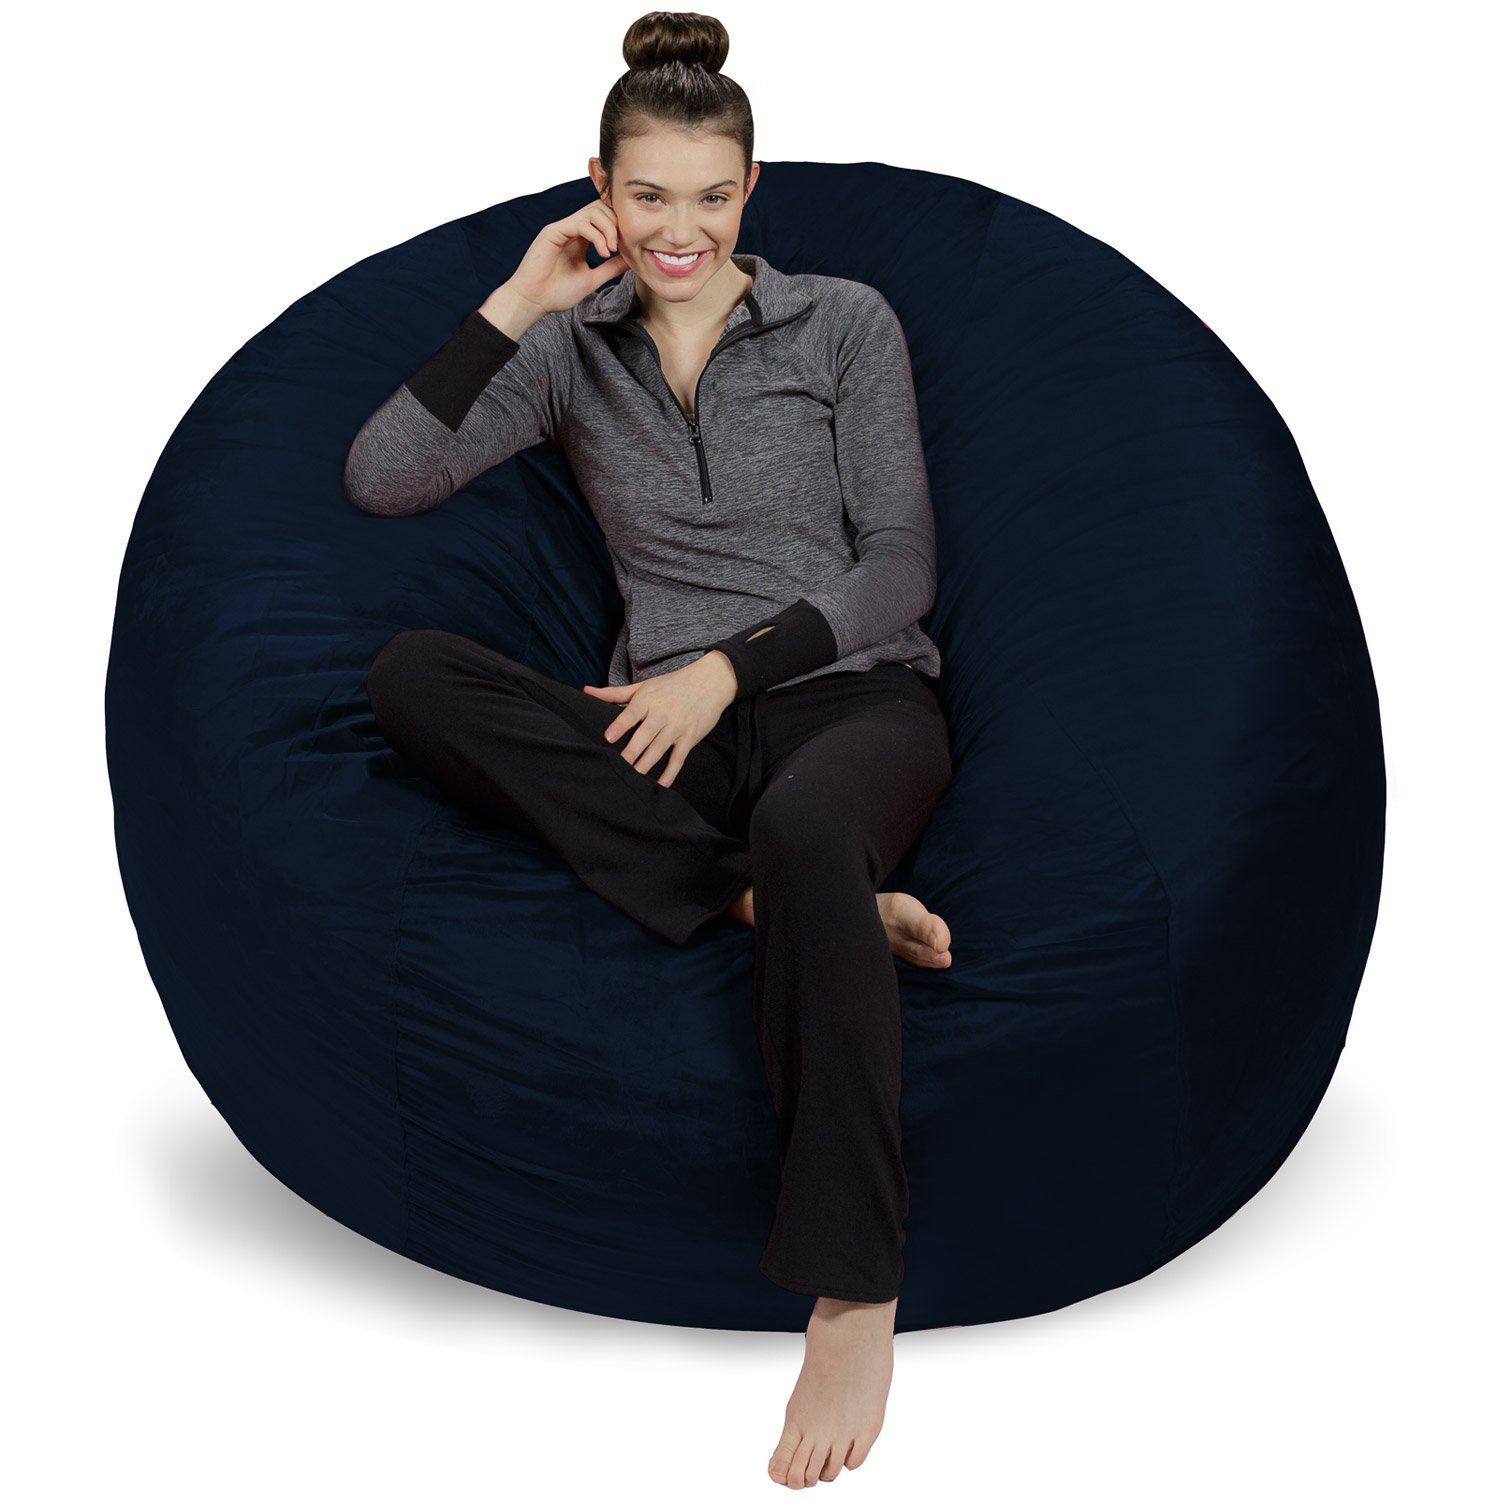 Sofa Sack - Plush Ultra Soft Bean Bags Chairs for Kids, Teens, Adults - Memory Foam Beanless Bag Chair with Microsuede Cover - Foam Filled Furniture for Dorm Room - Navy 6' by Sofa Sack - Bean Bags